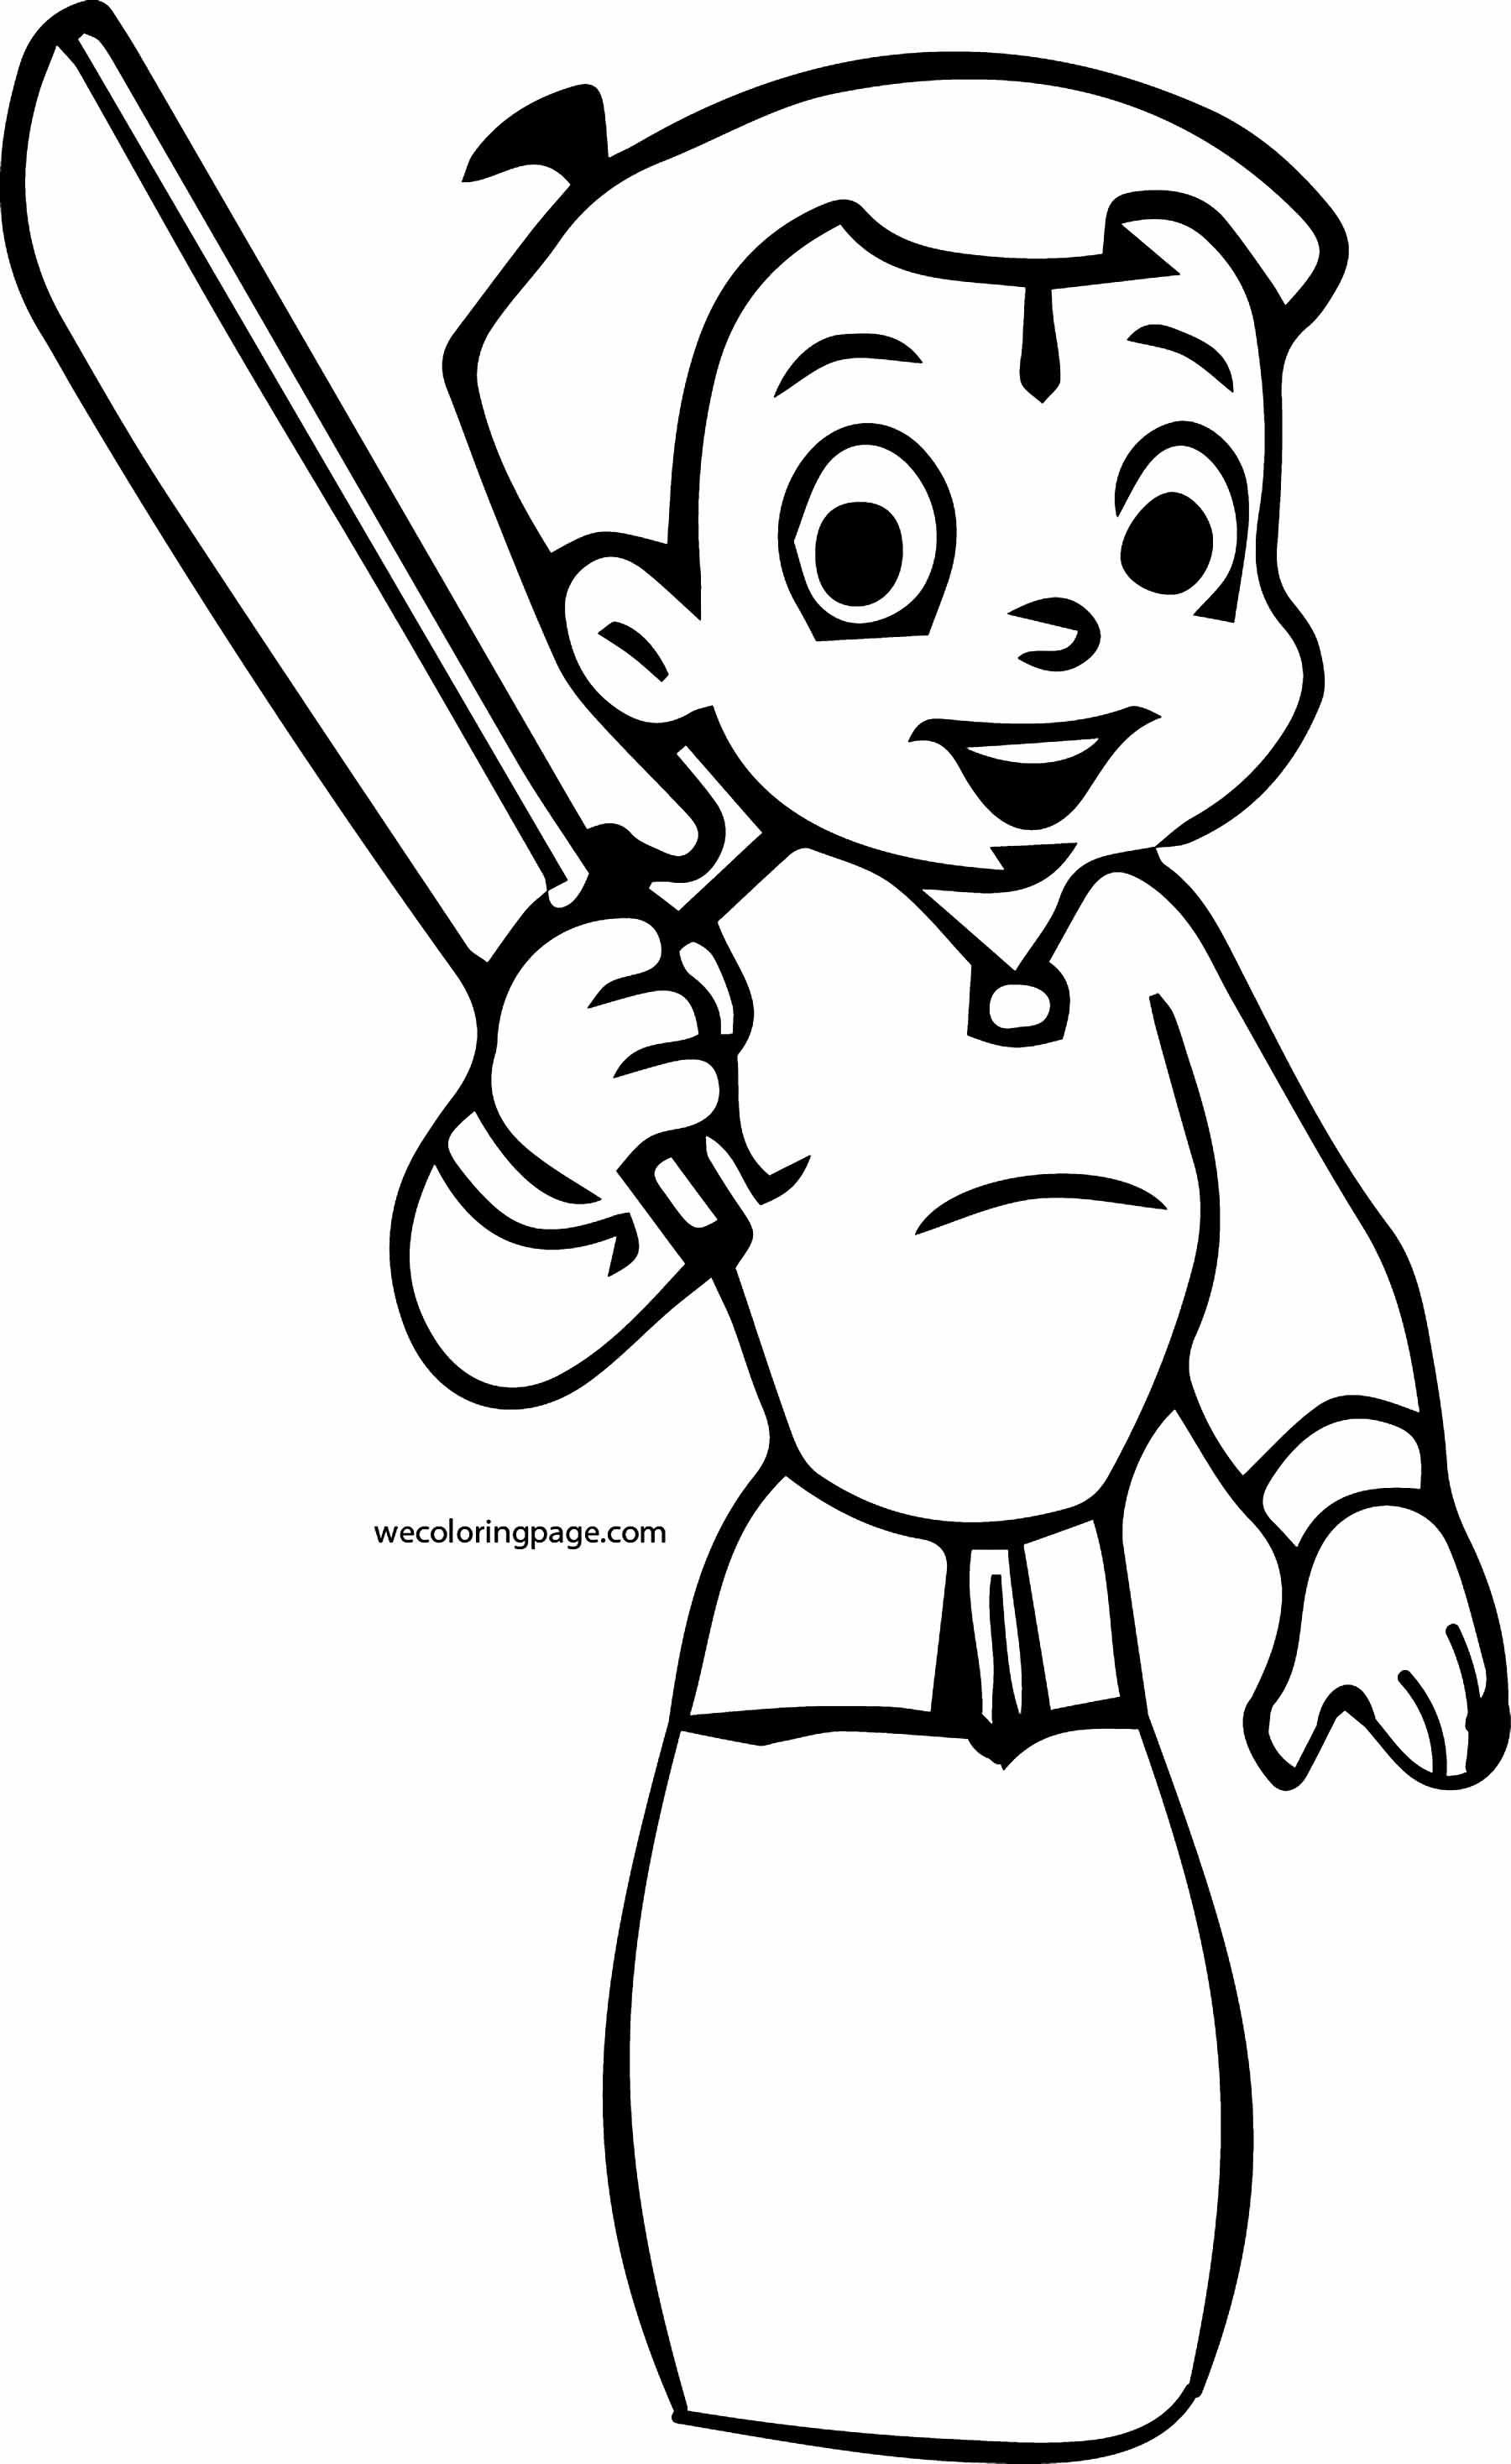 Chhota Bheem Mountain Coloring Page 47 Cricket